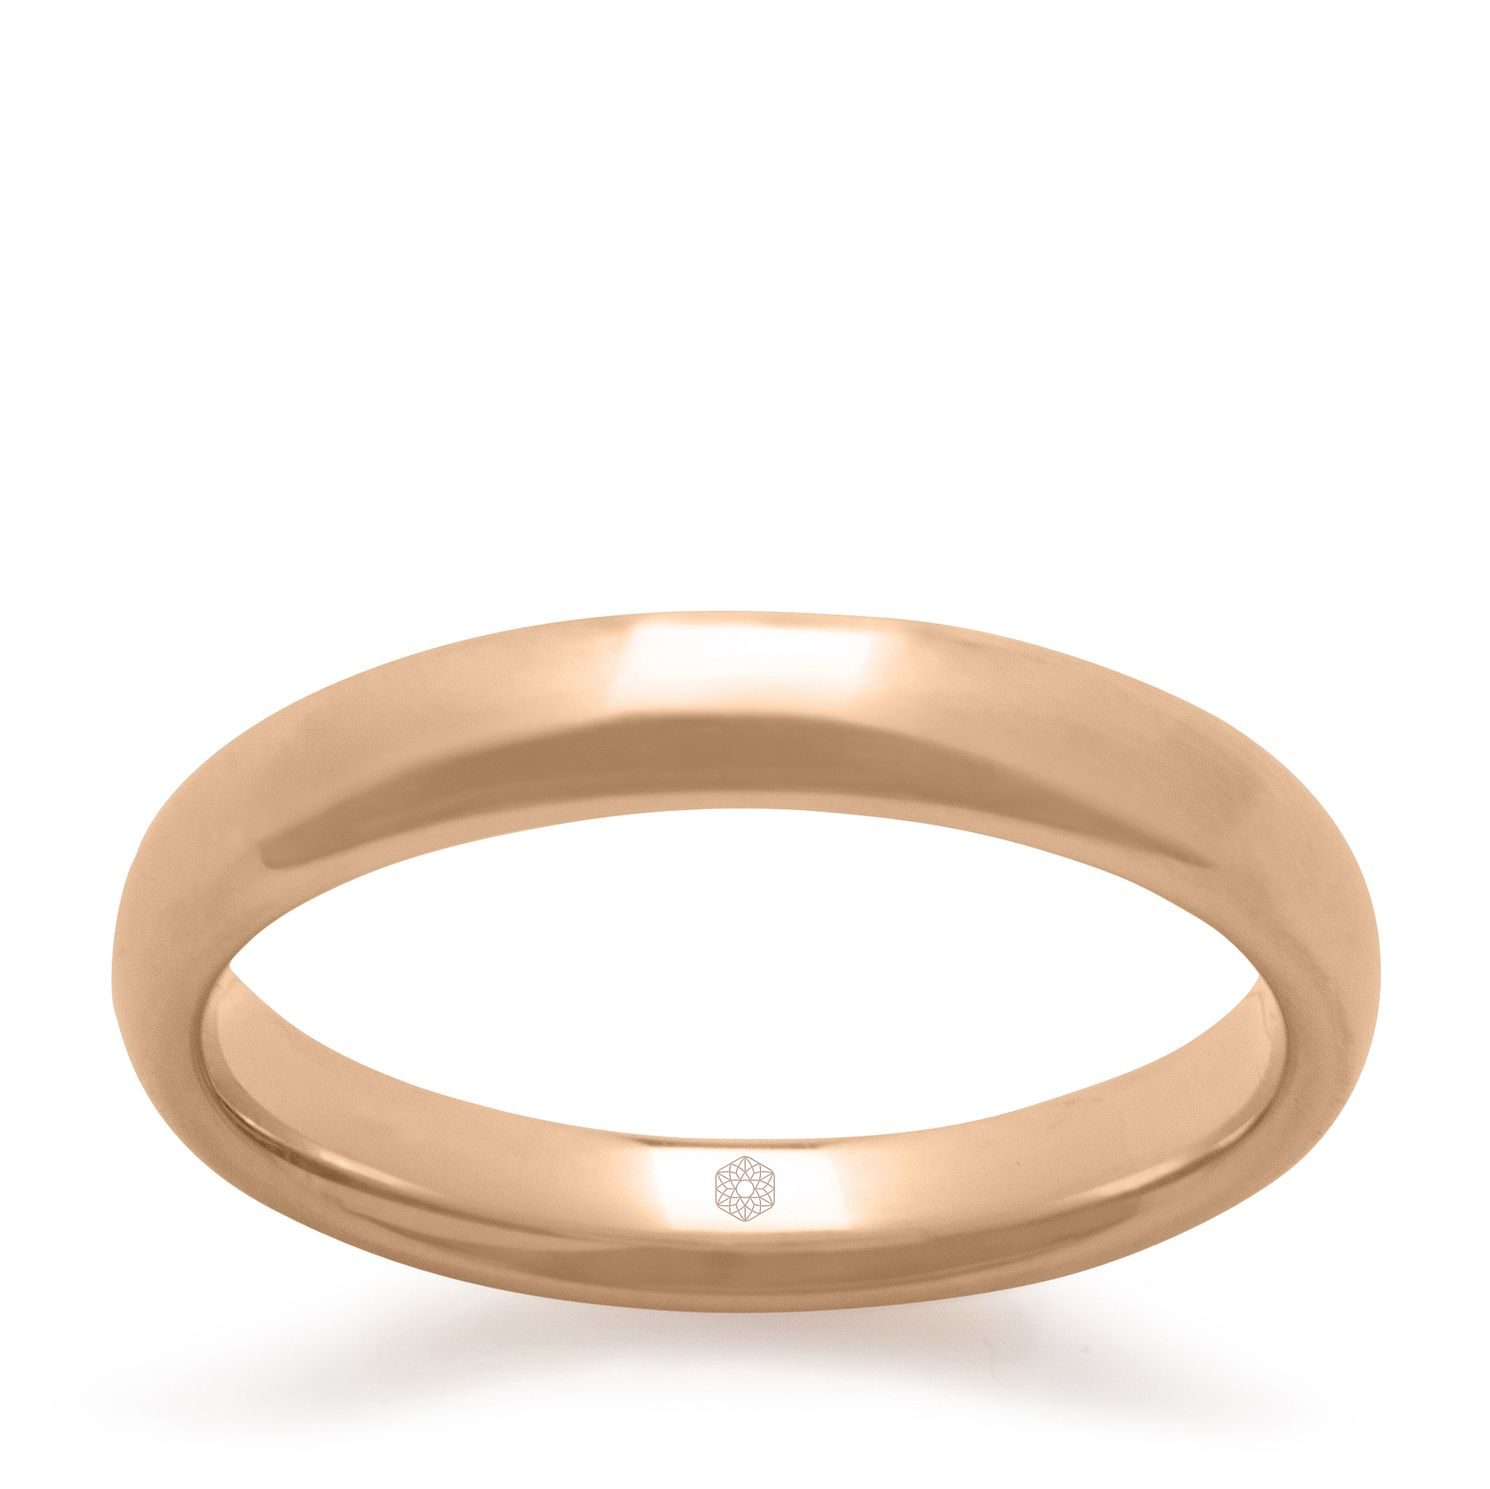 Baird Mint 18ct Rose Gold Blush 3mm Court Ring - Product number 3092771